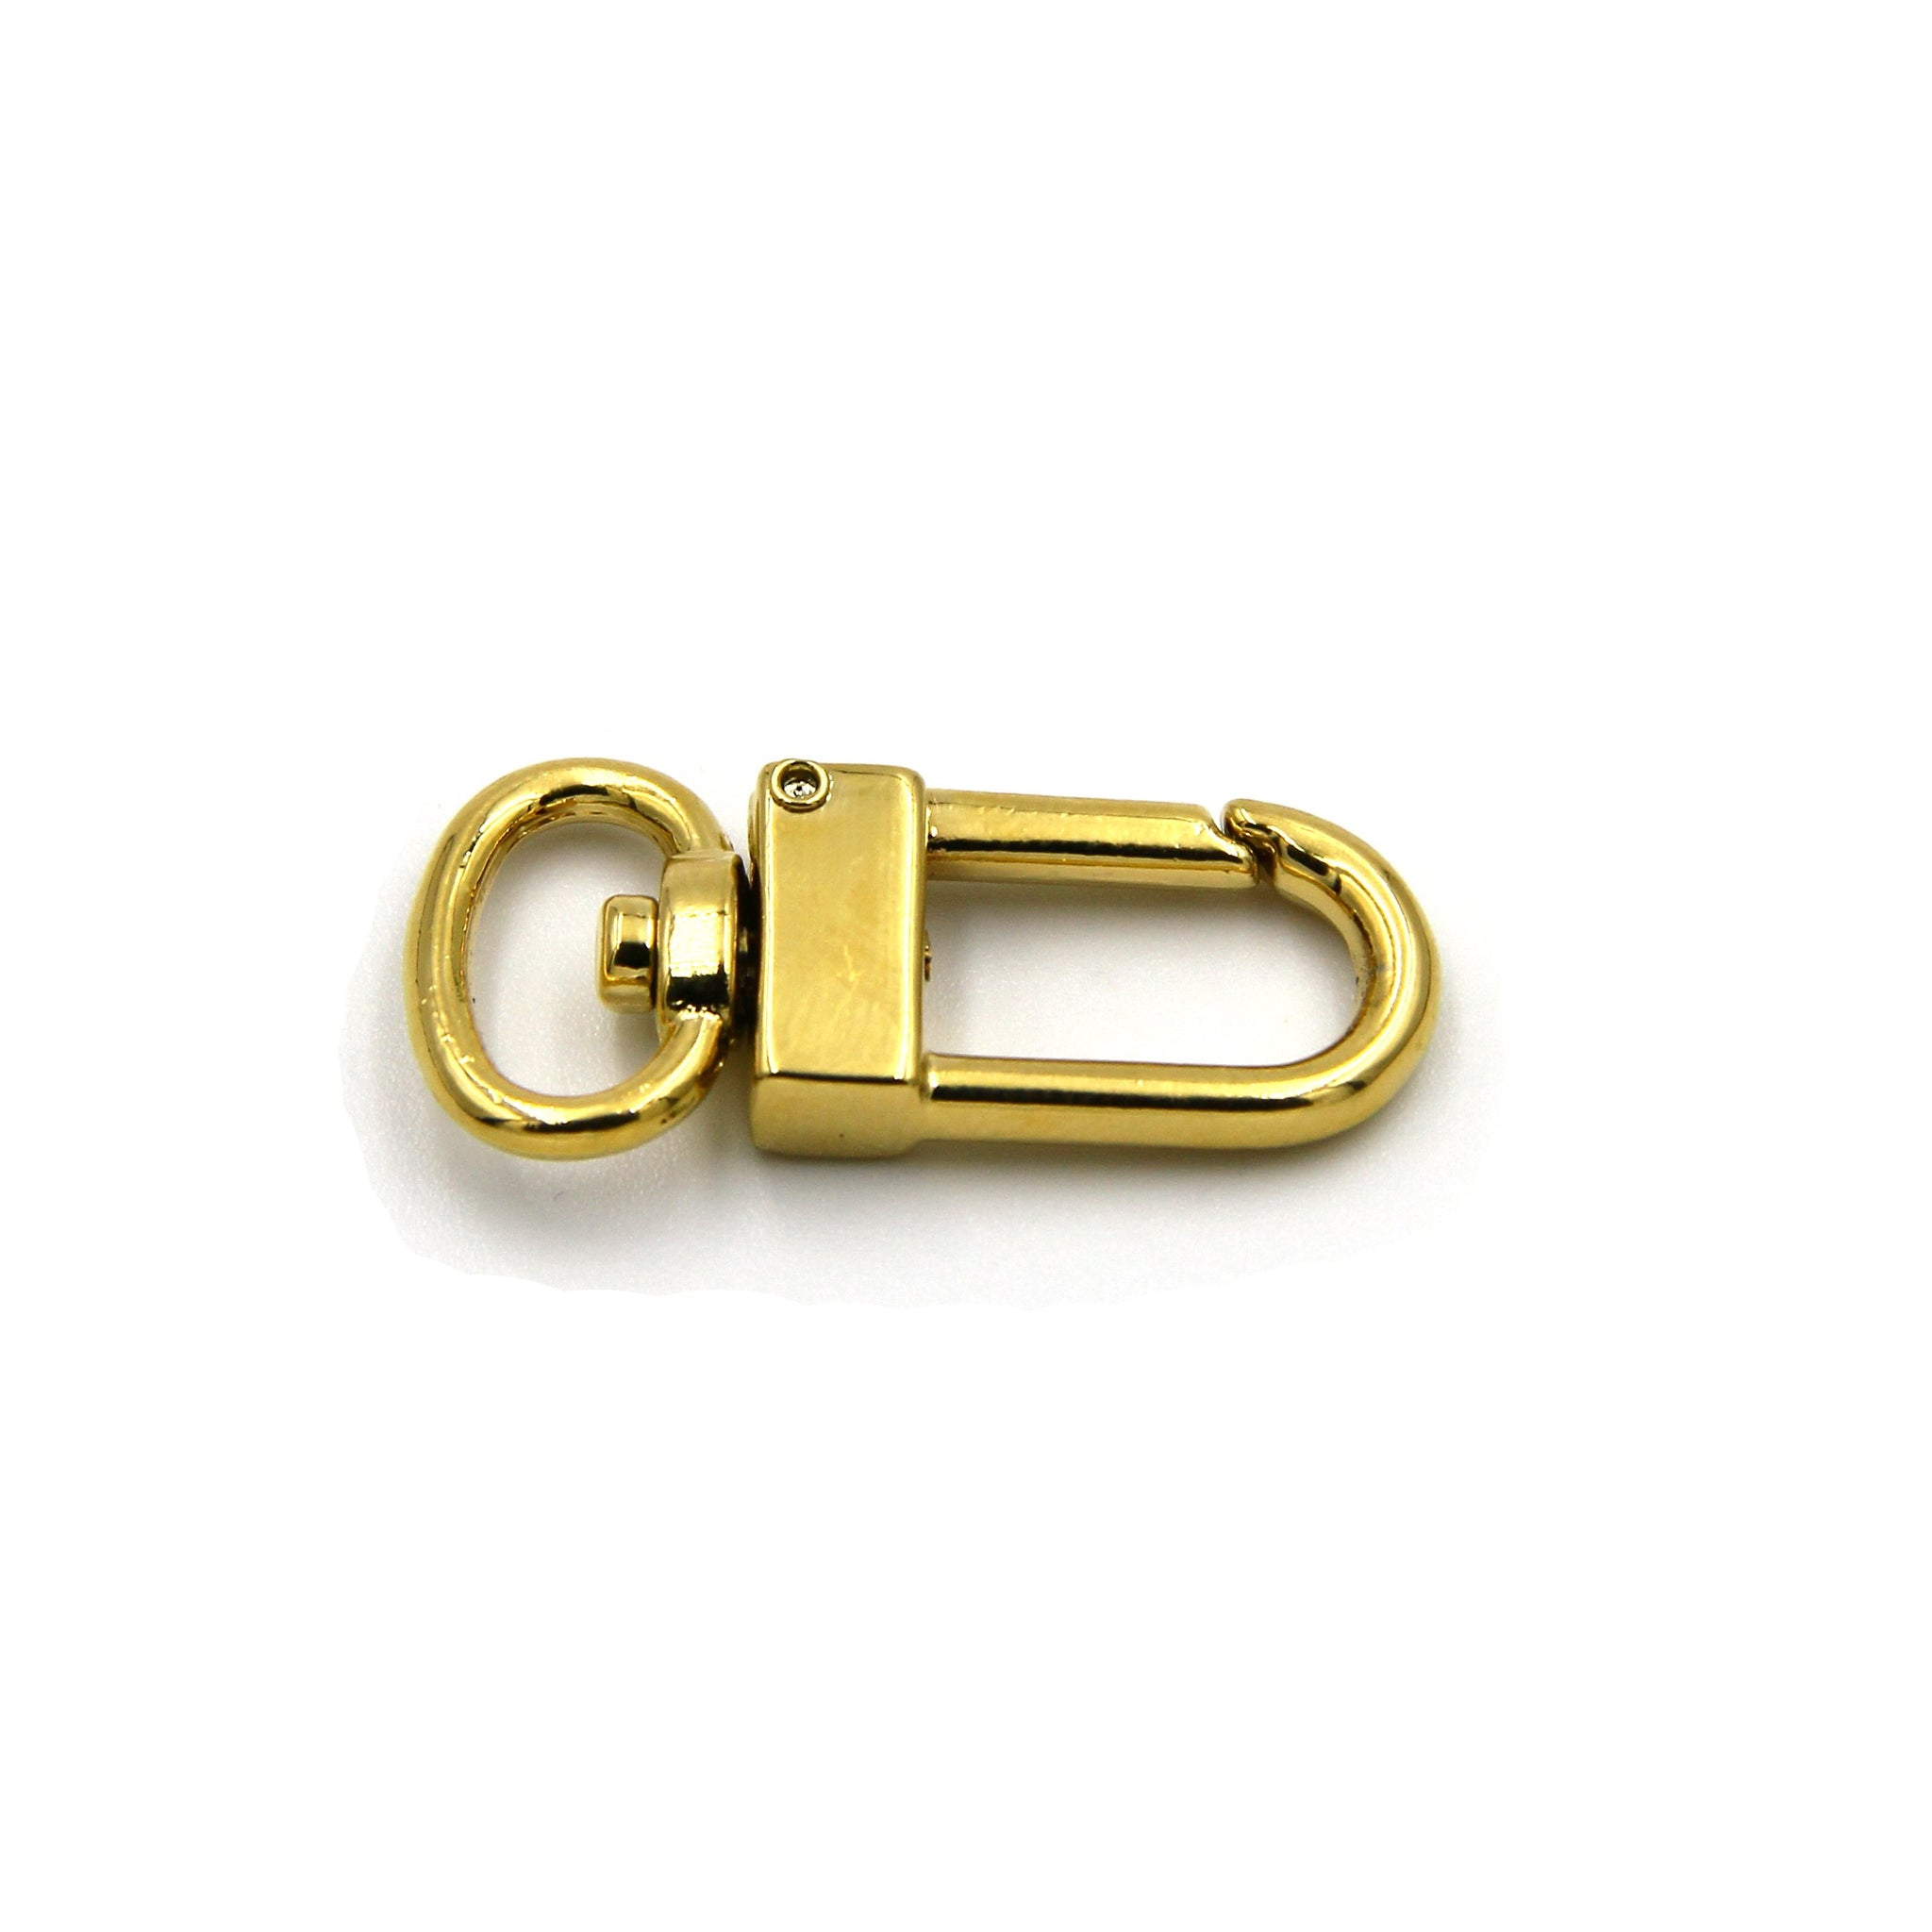 Gold Bolt Snap Clasp Hook Swivel - Metal Field